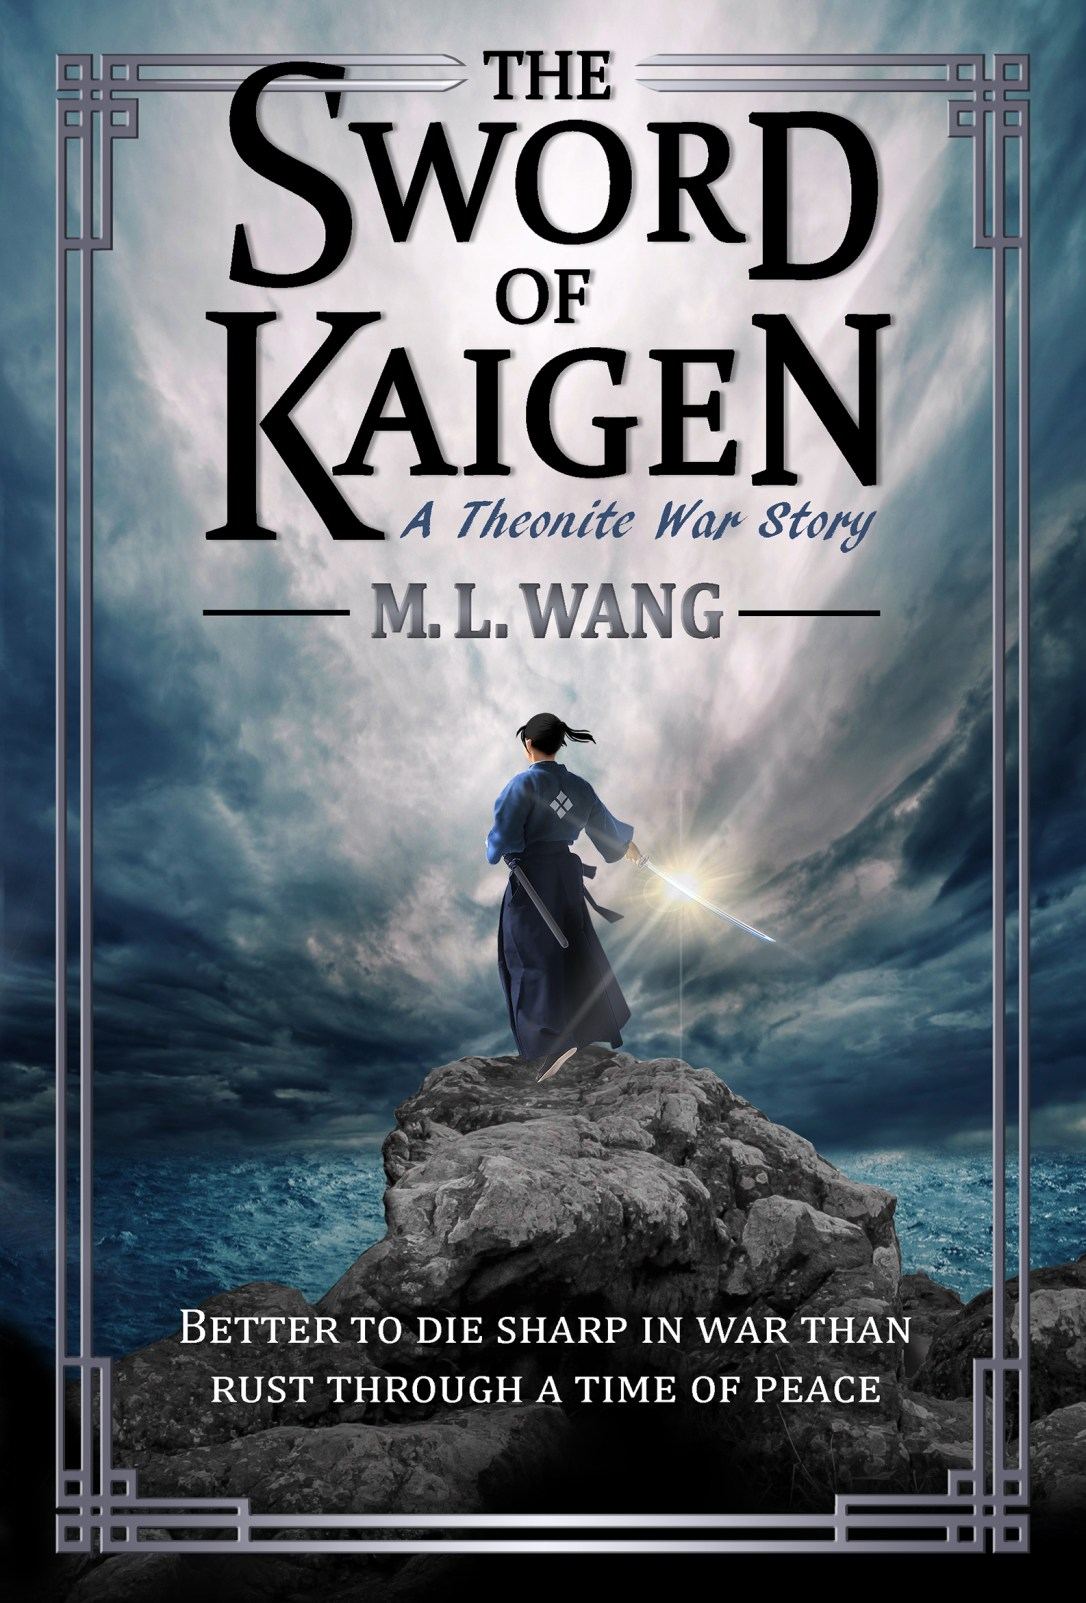 The Sword of Kaigen by M. L. Wang